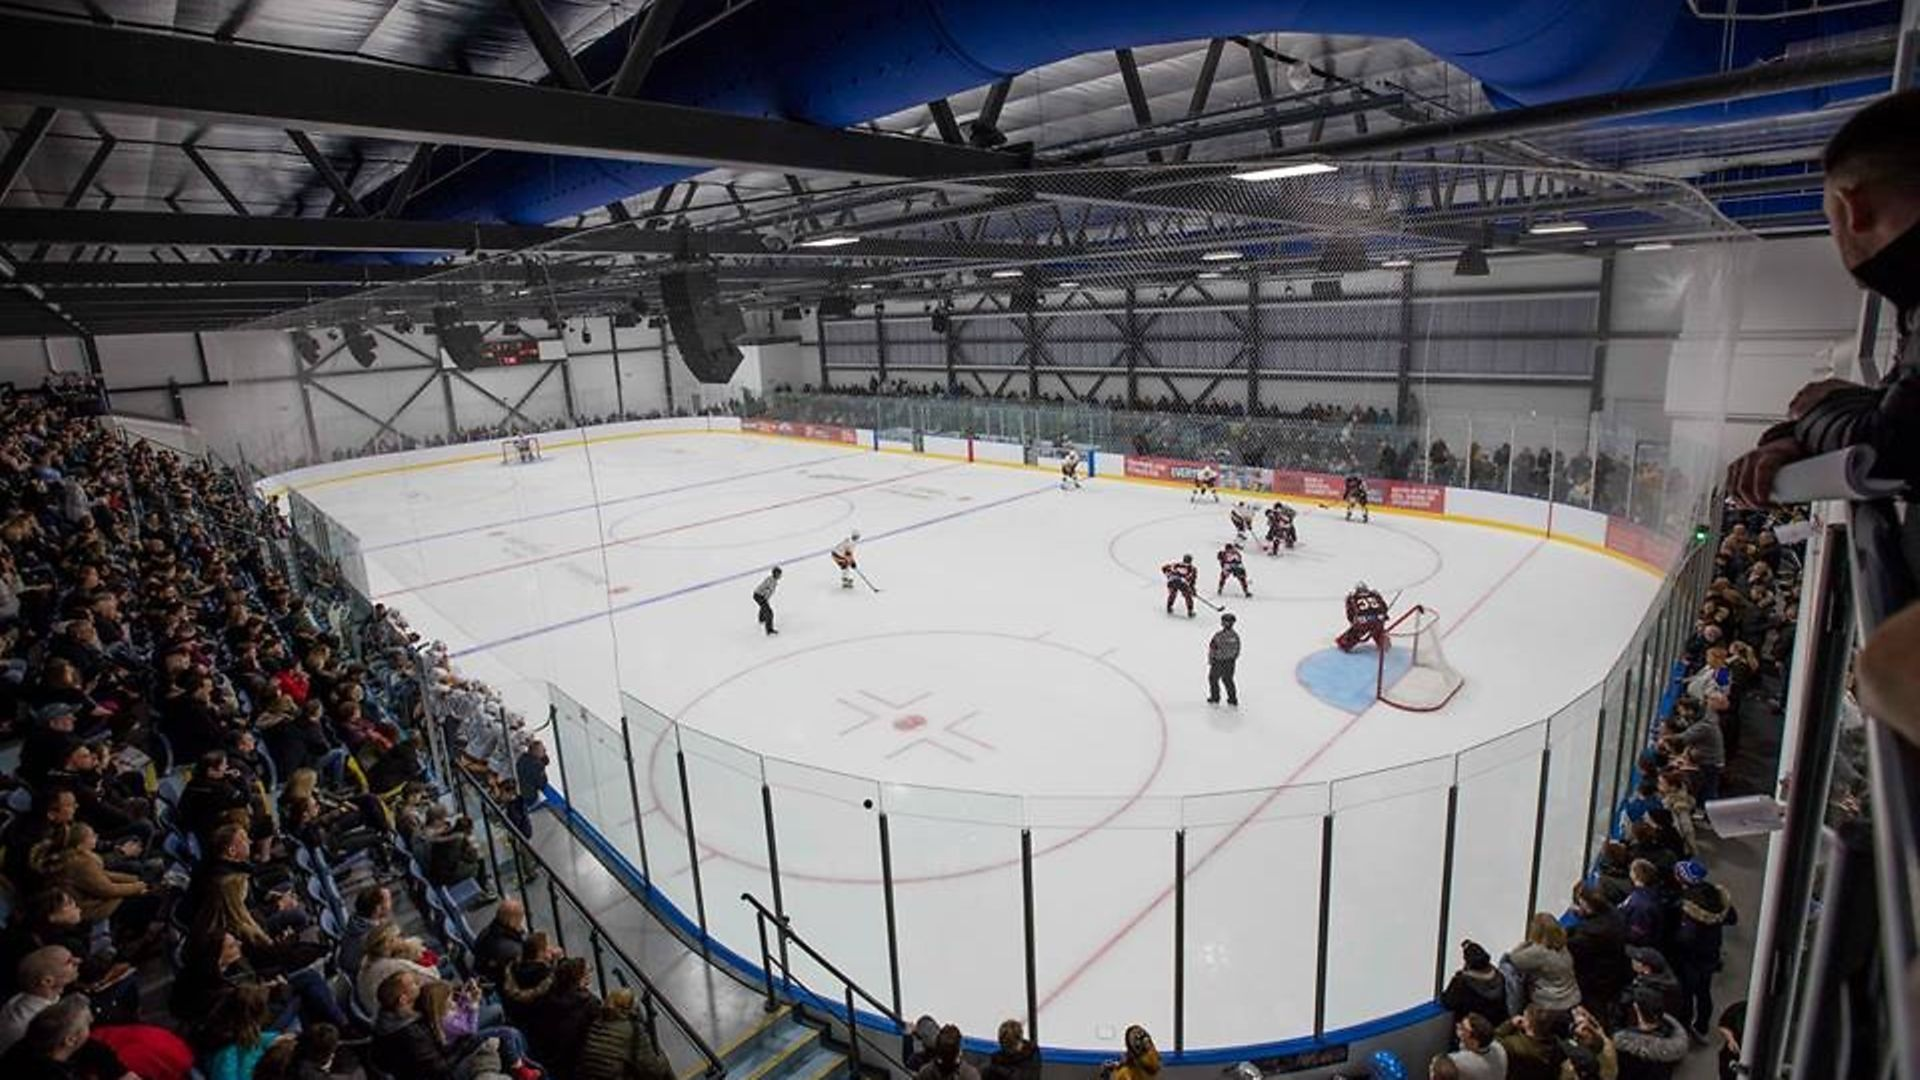 Ice hockey - but where won't it be taking place this summer? (Question six) - Credit: Archant